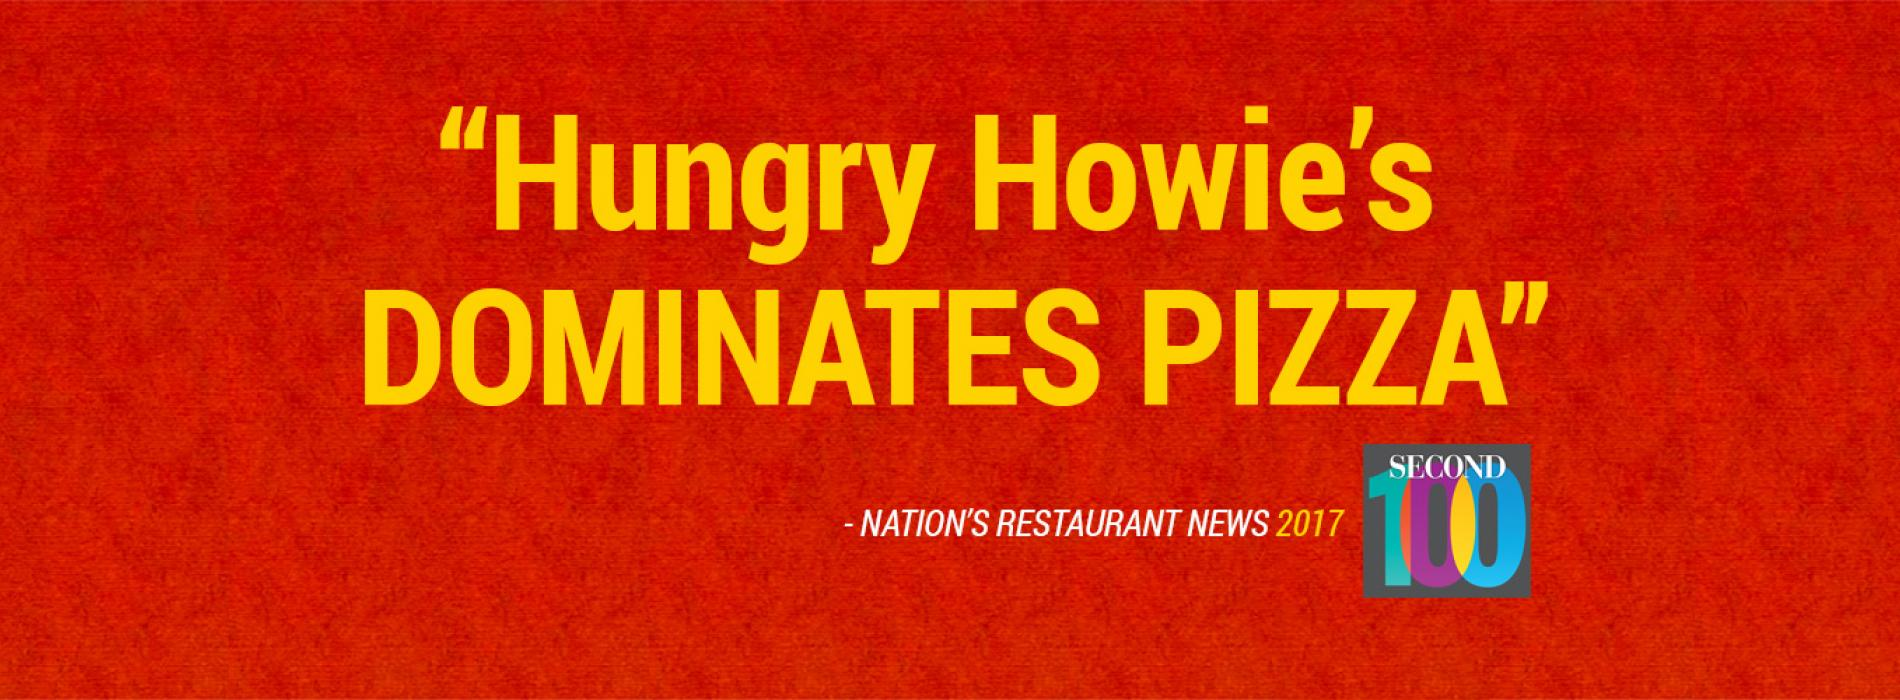 Hungry Howie's Dominates Pizza